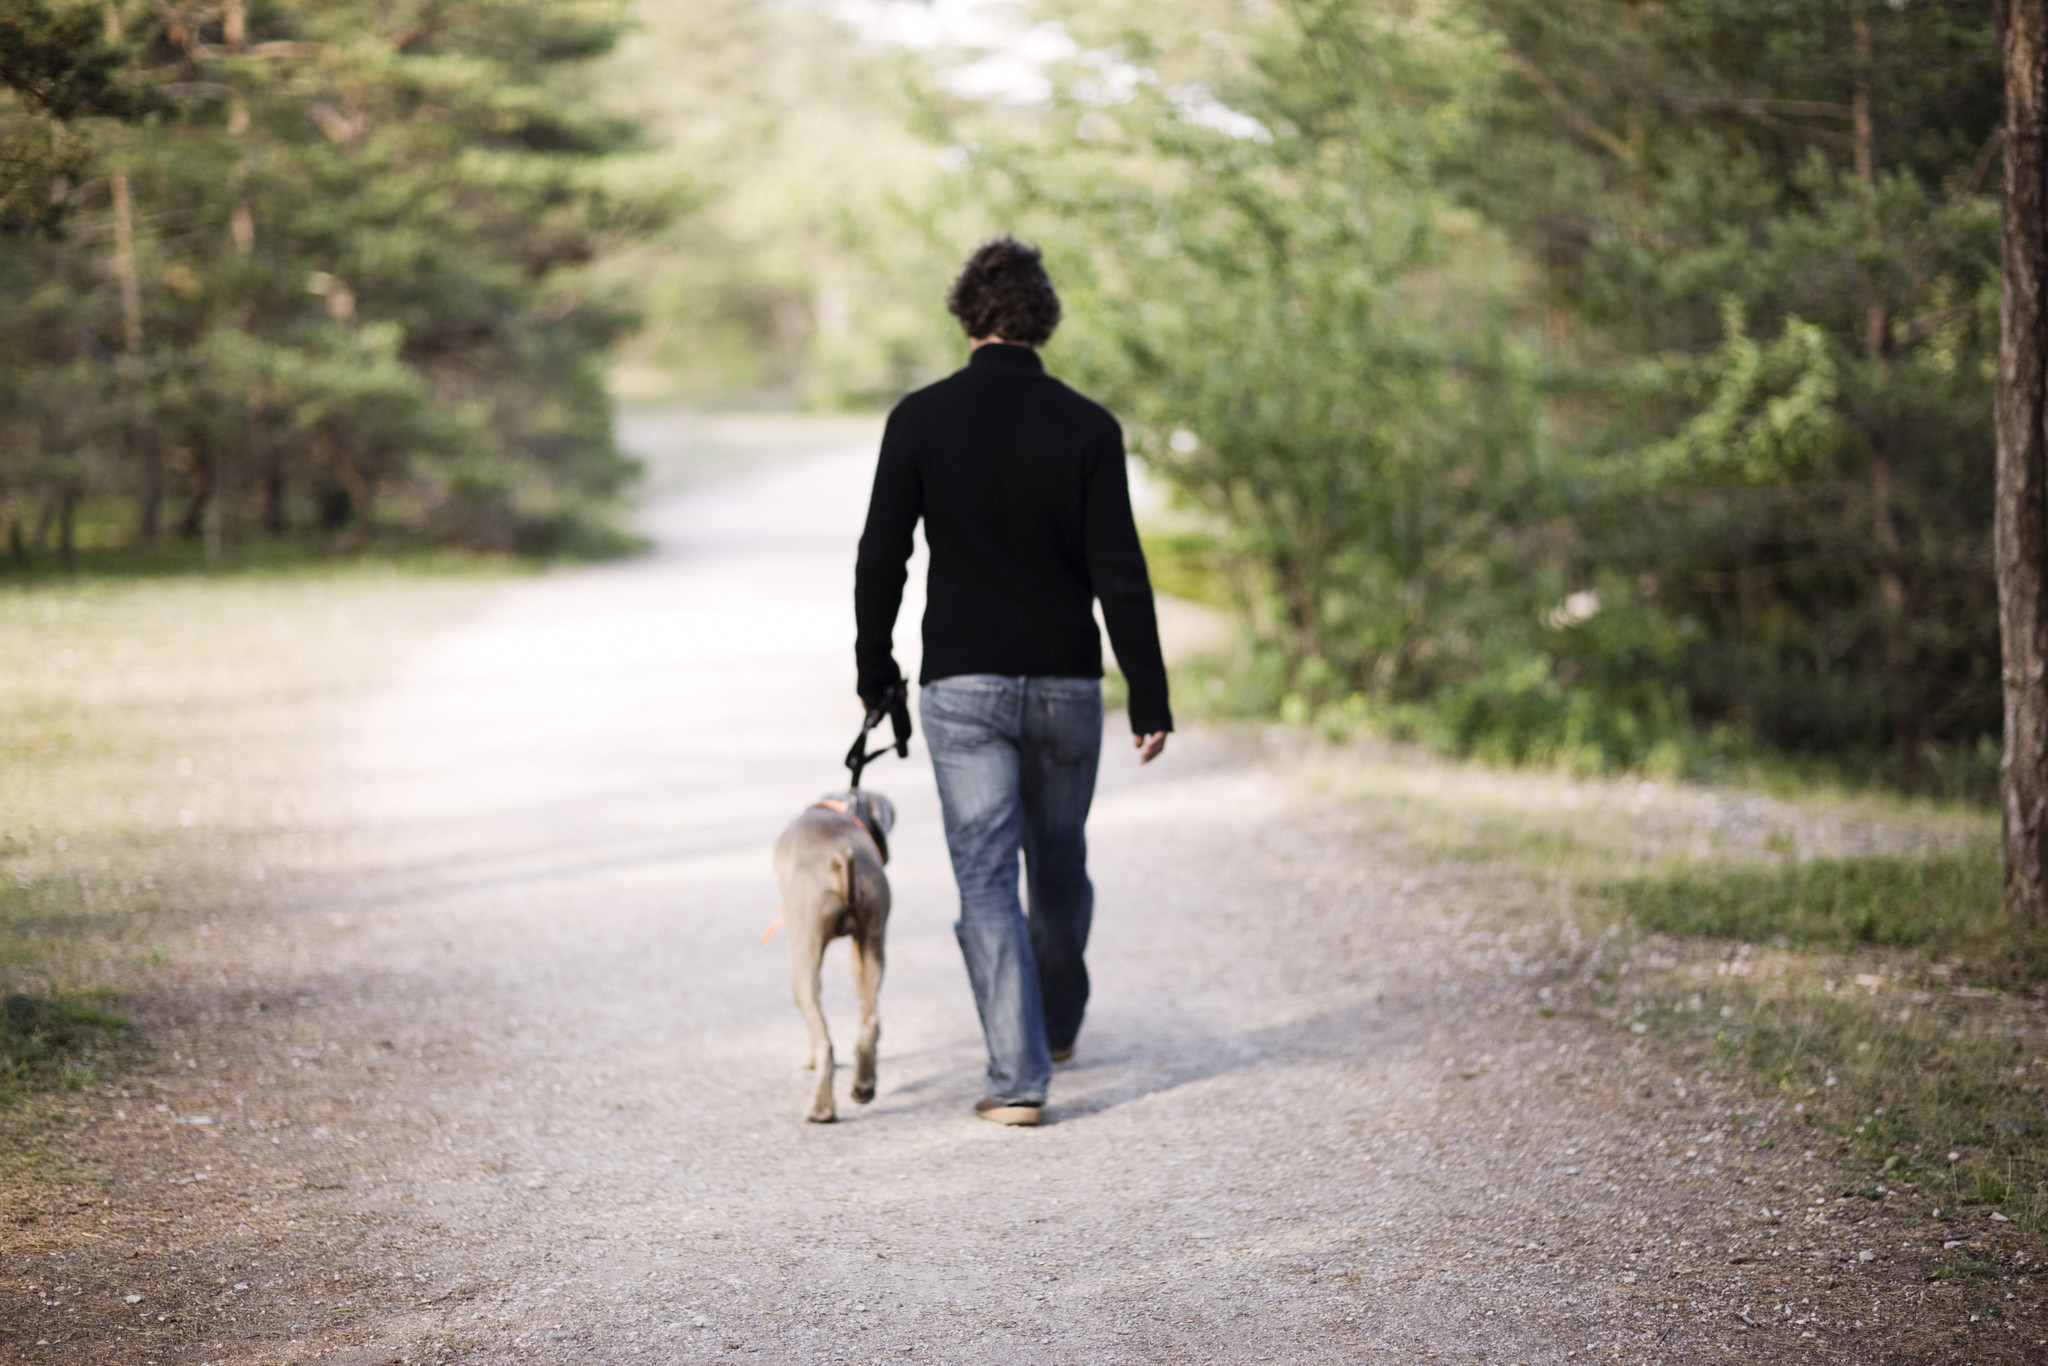 When it comes to walking, more is better